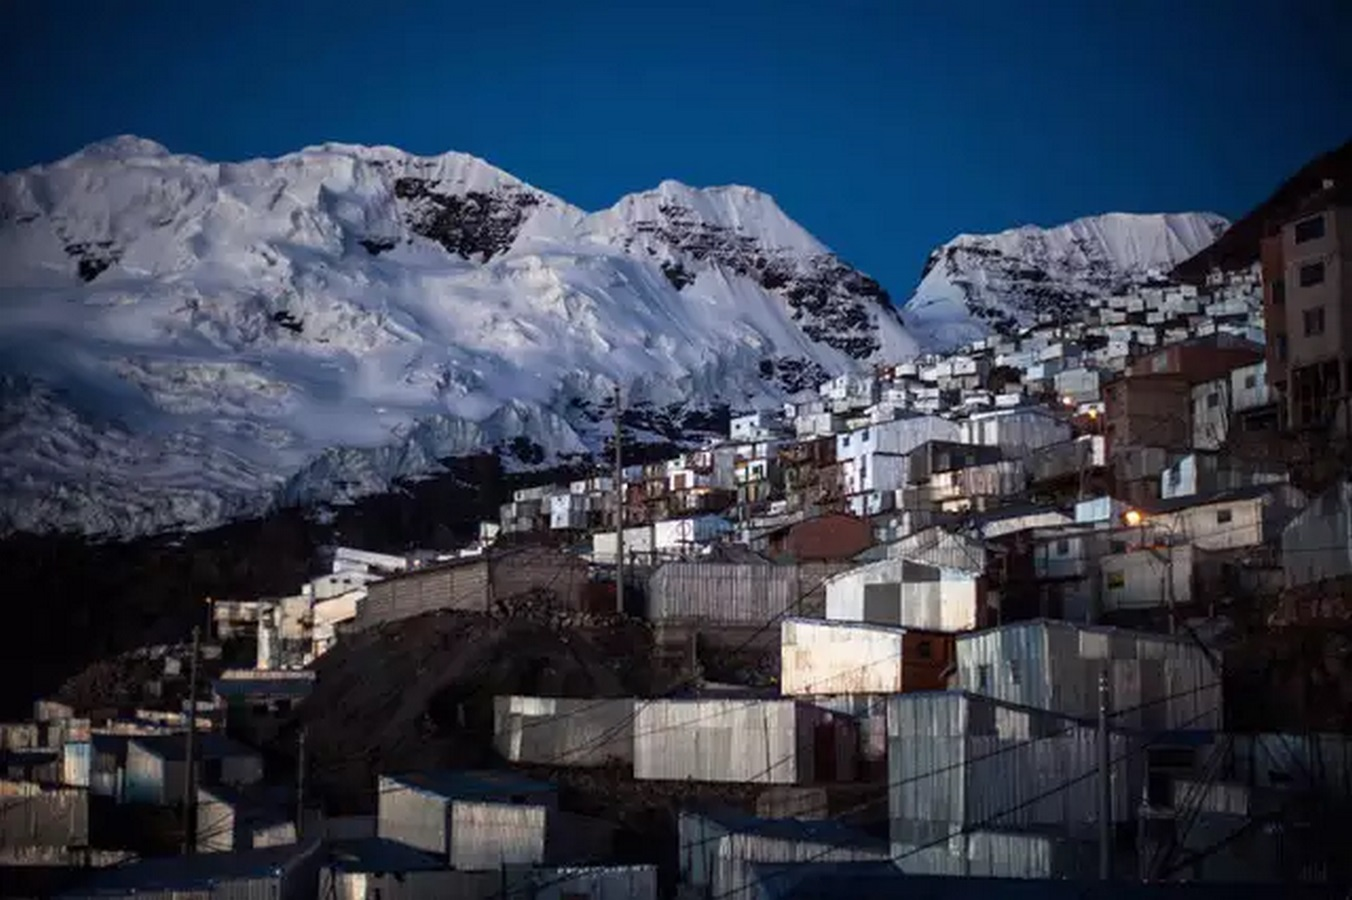 An architectural review of the La Rinconada : The highest human habitation in the world - Sheet8